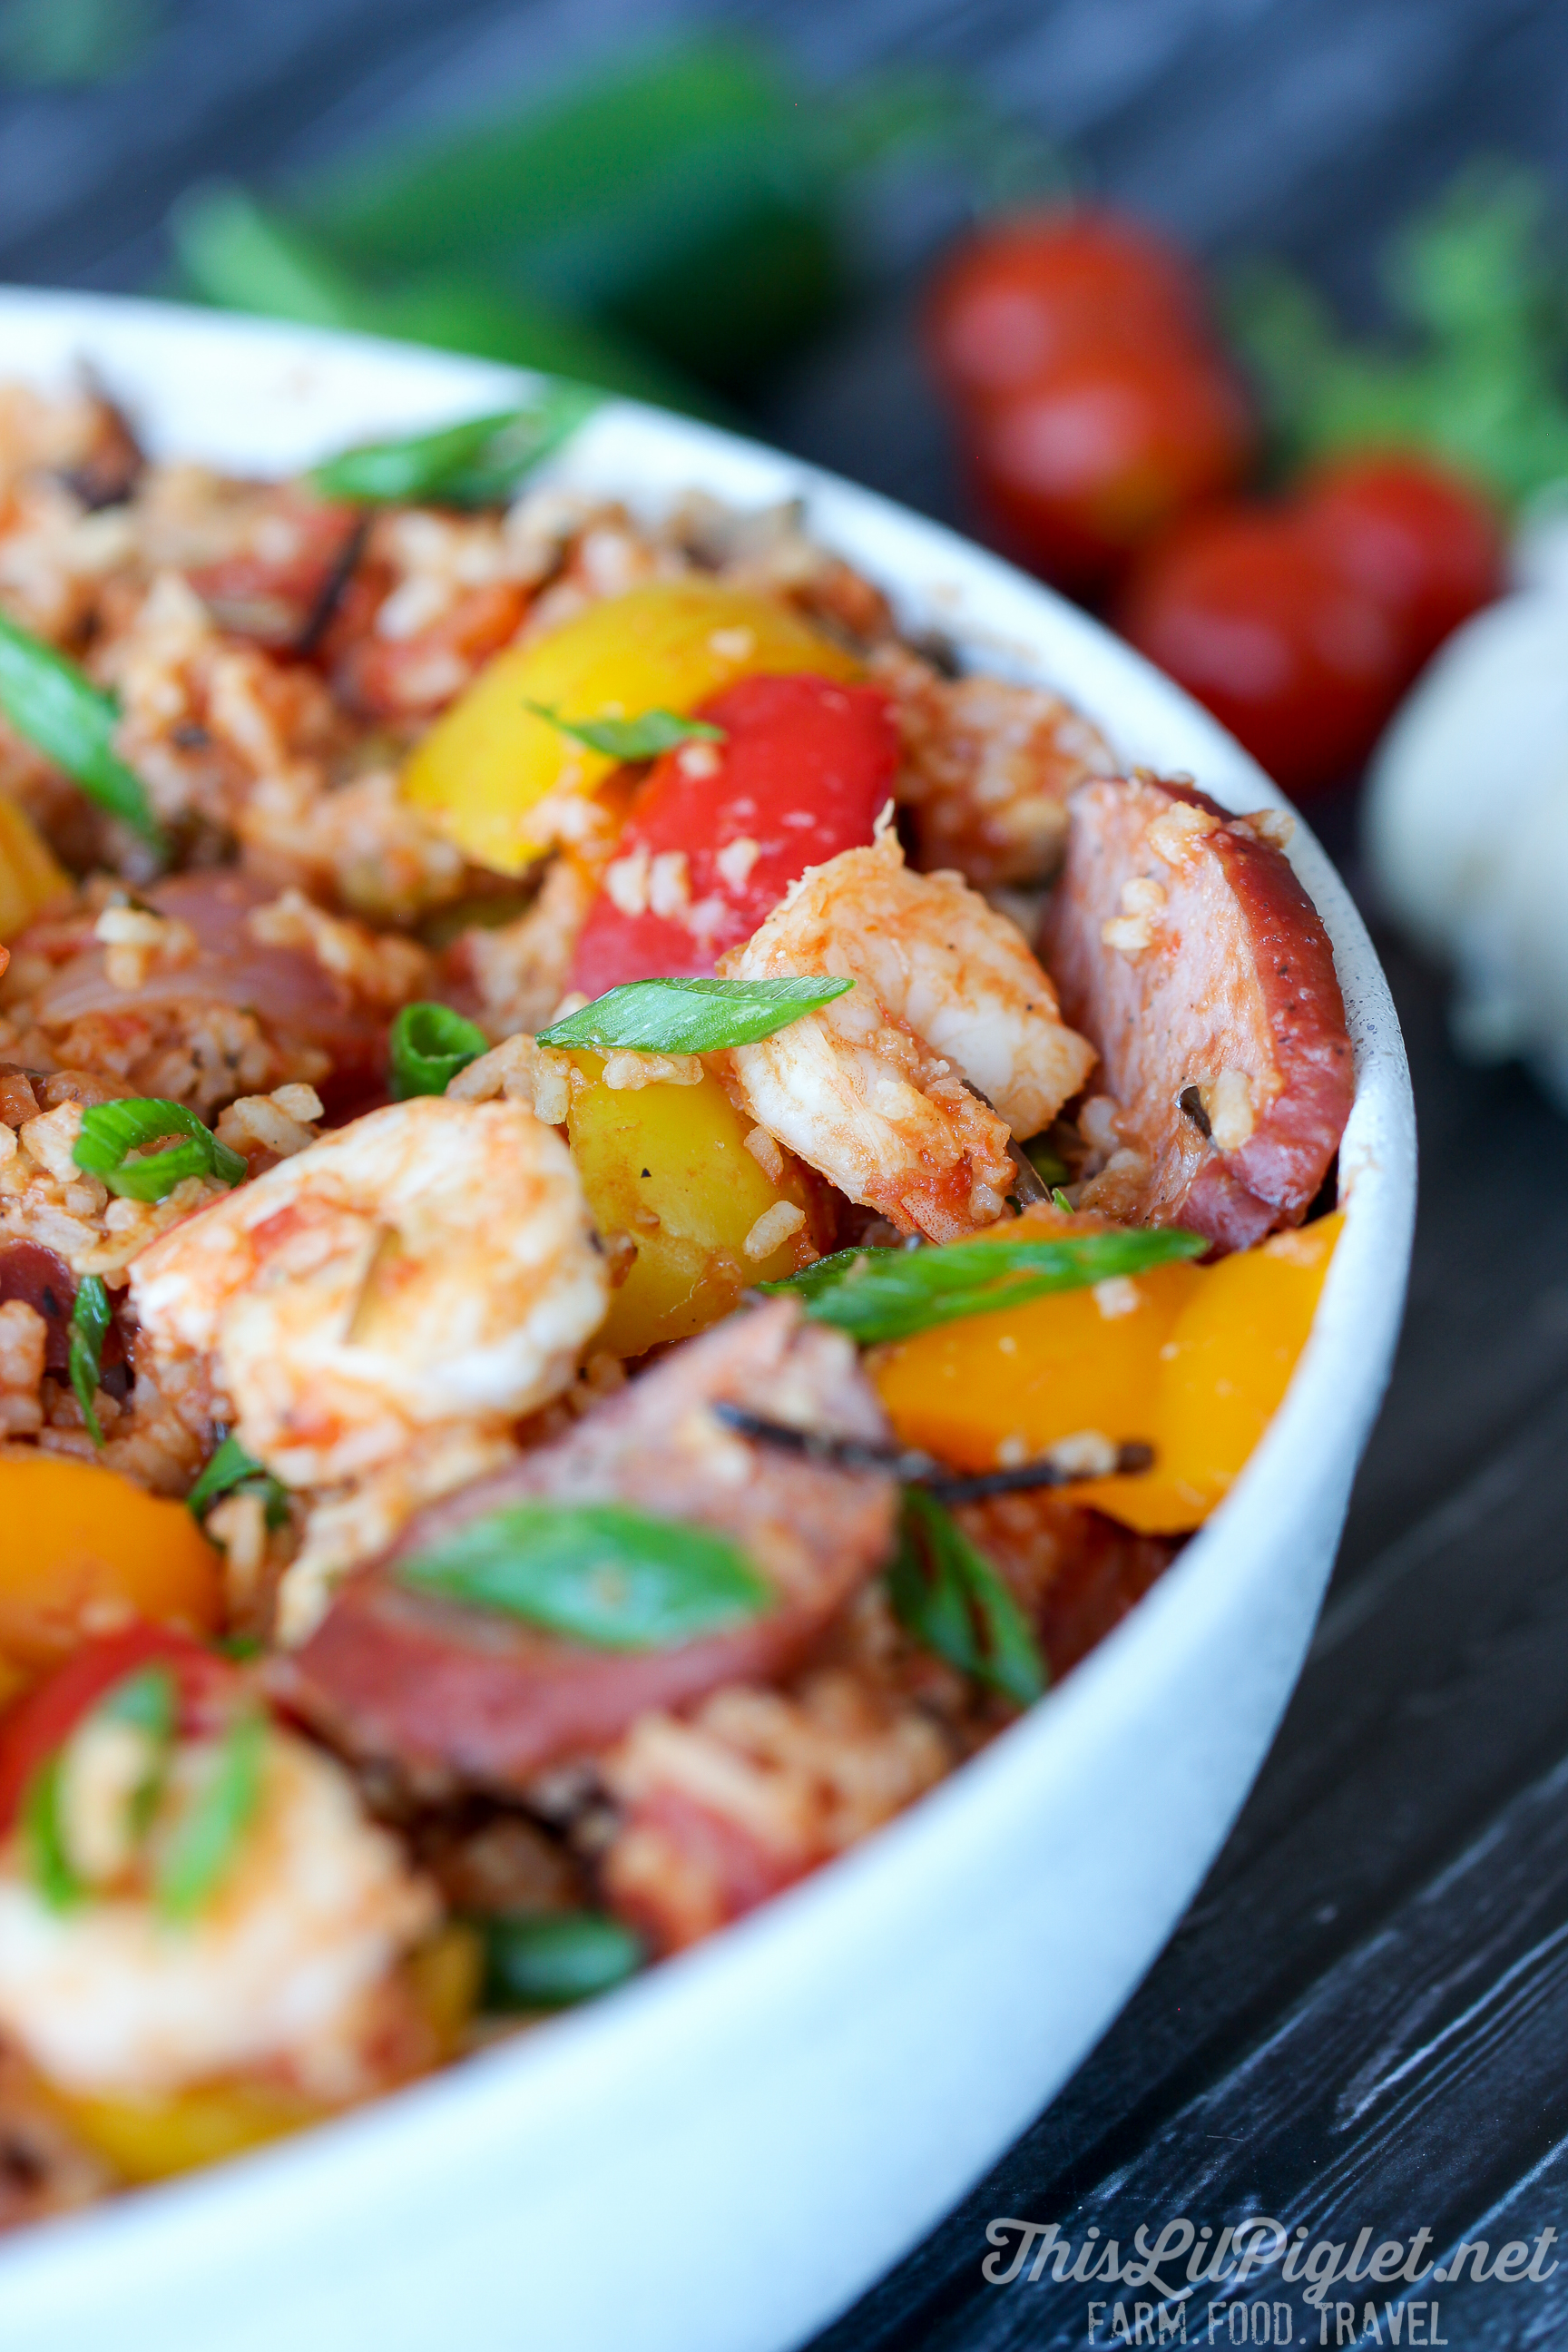 Jambalaya Recipe One Pot Meals with Chicken, Sausage, Shrimp and Wild Rice // via thislilpiglet.net